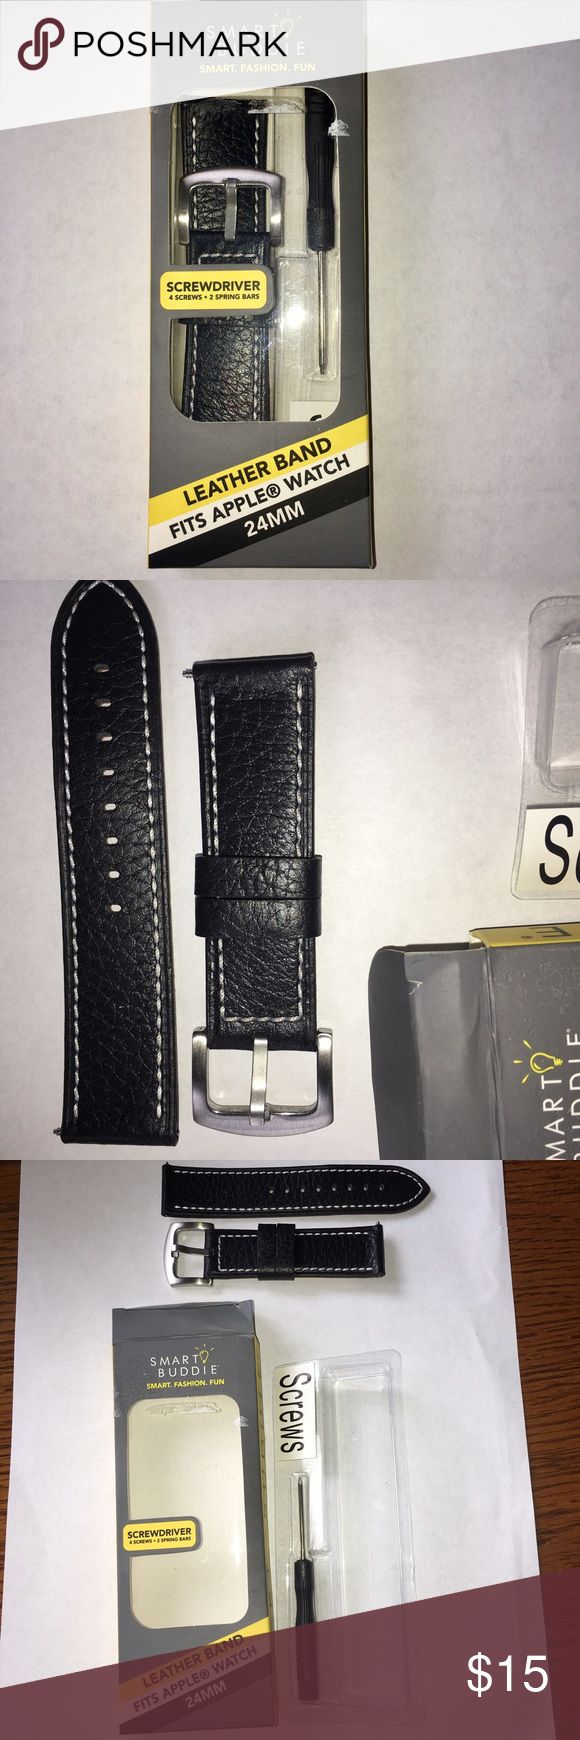 NEW BLACK APPLE WATCH BAND FOR 42mm size NEW BLACK LEATHER WATCH BAND FOR 42mm APPLE WATCH. Genuine leather matte croco 24mm width band fits 42mm size Apple Watch Screwdriver and 4 screws included for easy removal and installation of leather watch straps 2 spring bars also included for use with any 24mm standard width watch Stainless steel hardware and double keepers included for a secure fit while wearing Black croco replacement watch bands add a stylish look to your Apple Watch fits apple…